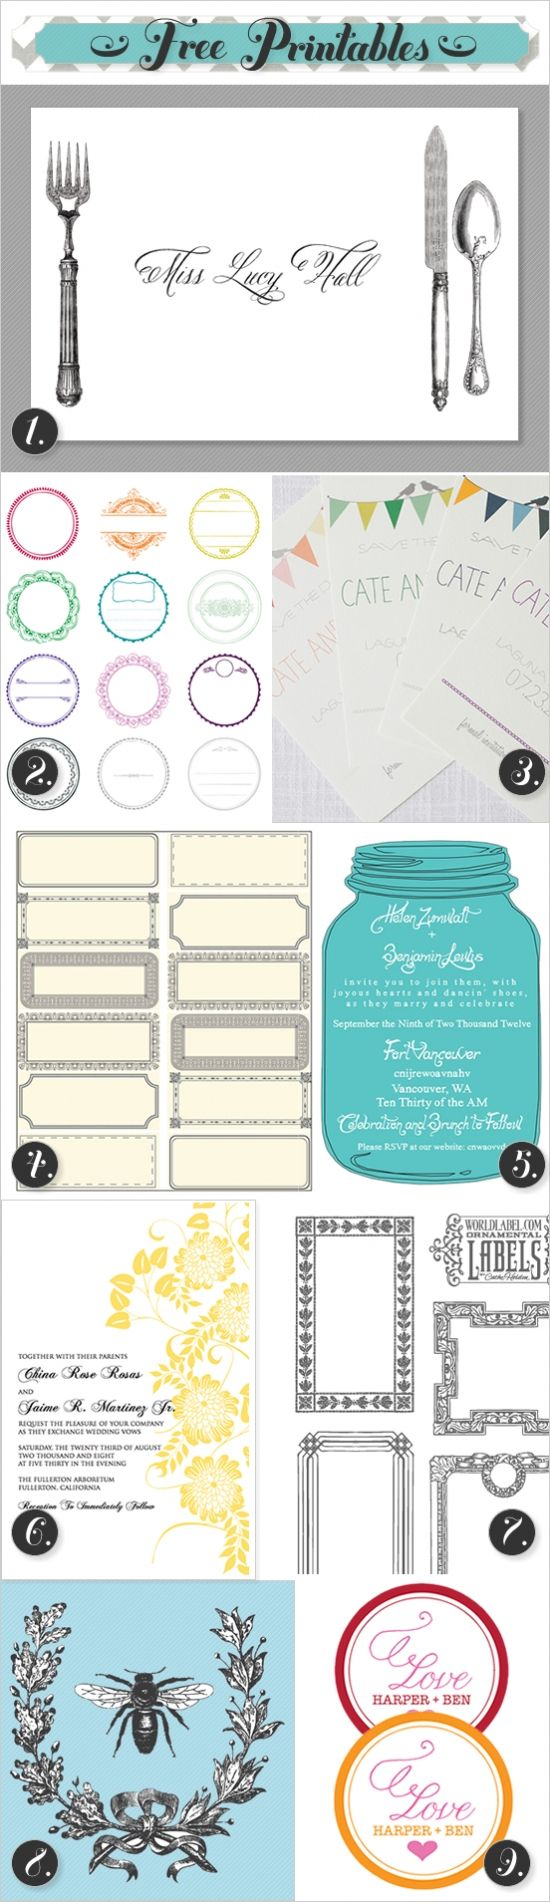 253 best Free printables images on Pinterest | Free printable, Free ...